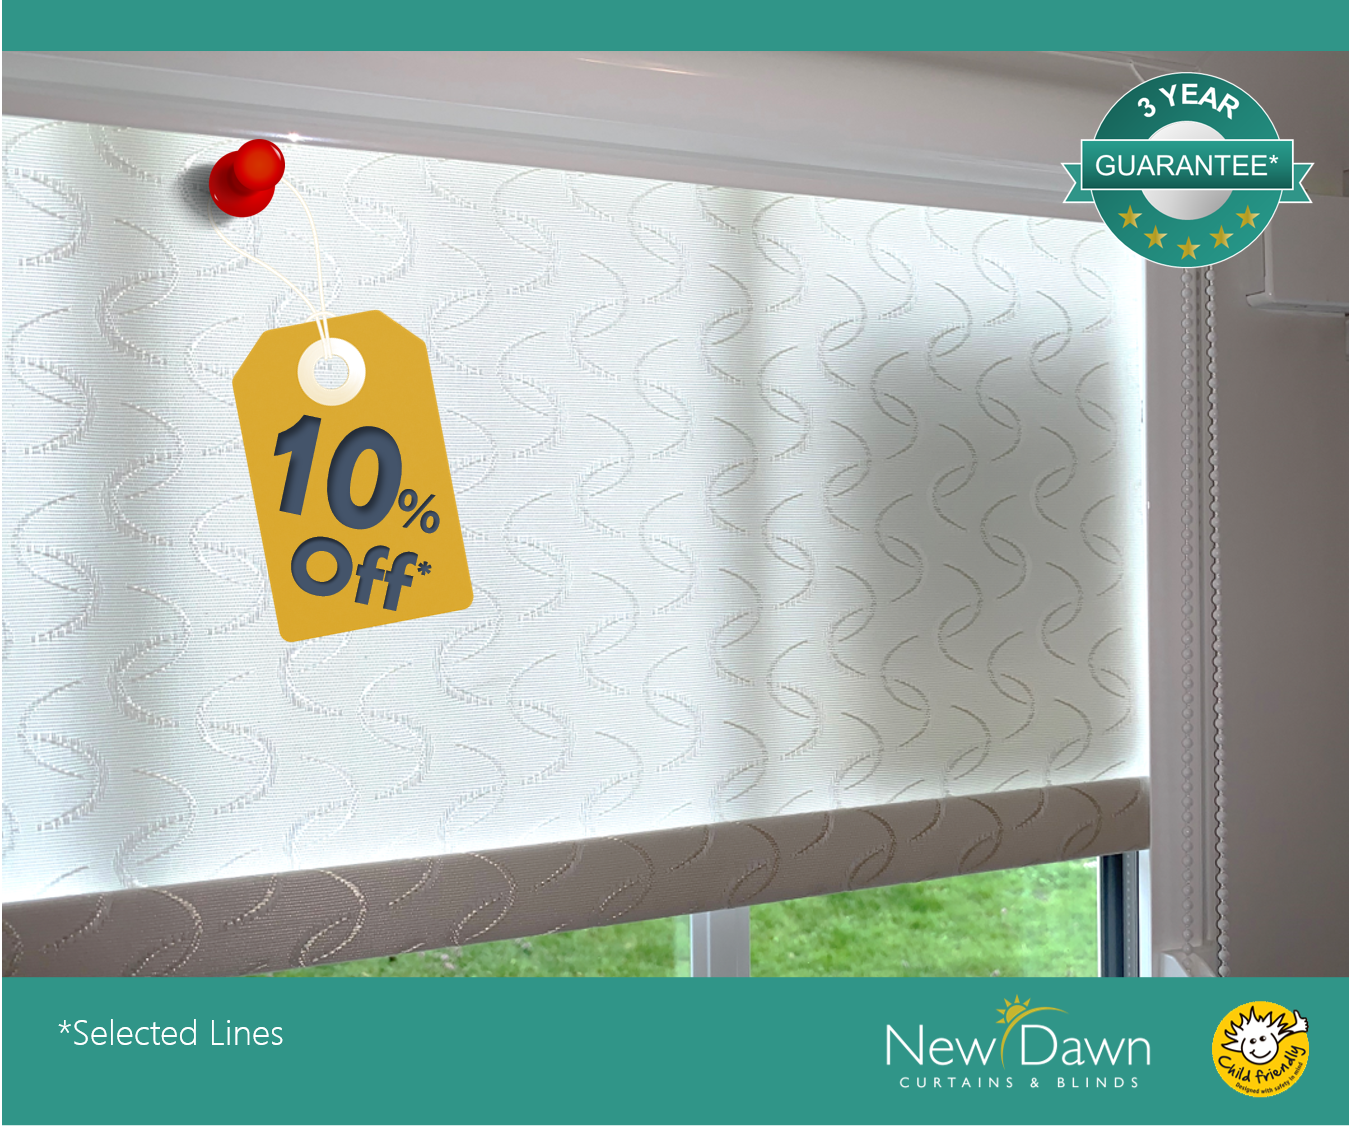 no drill roller blinds 10% off